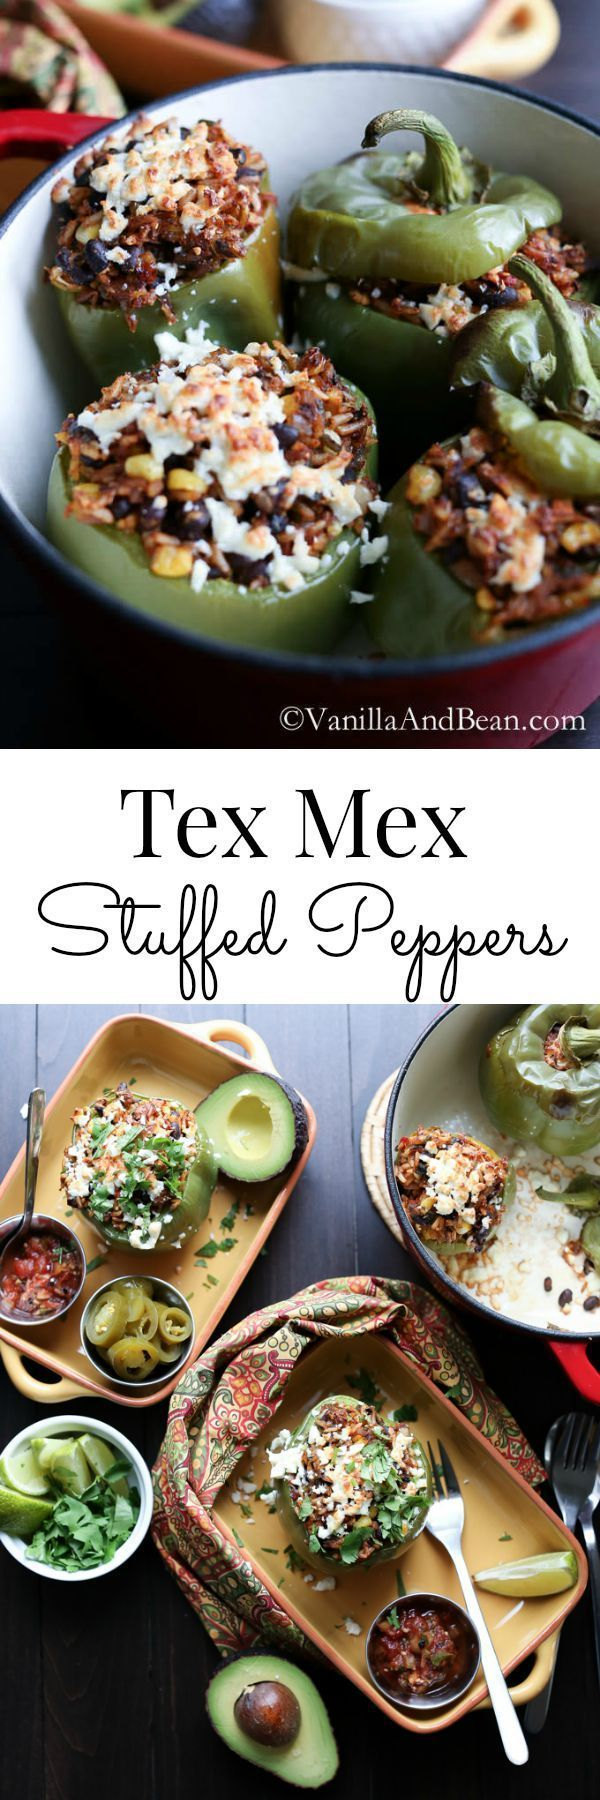 Packed with Mexican spices and nourishing ingredients, this vegetarian recipe is easy to make and is a favorite in our home | Vanilla And Bean